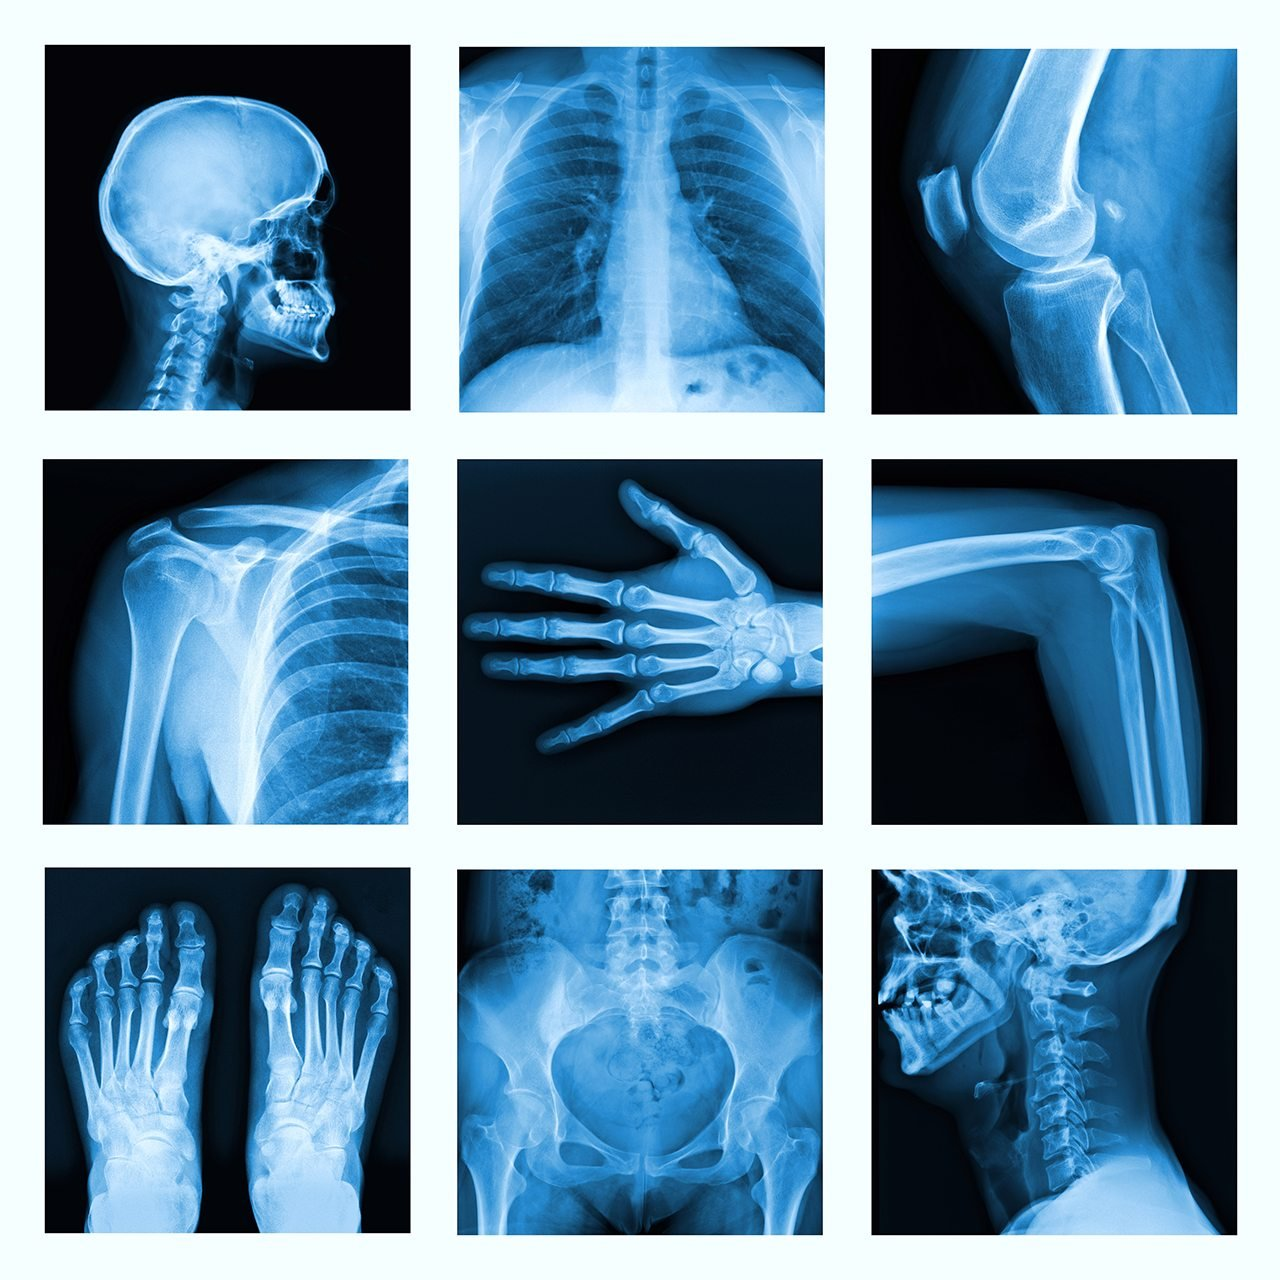 Imaging (Radiology) Services | Penn Highlands Healthcare